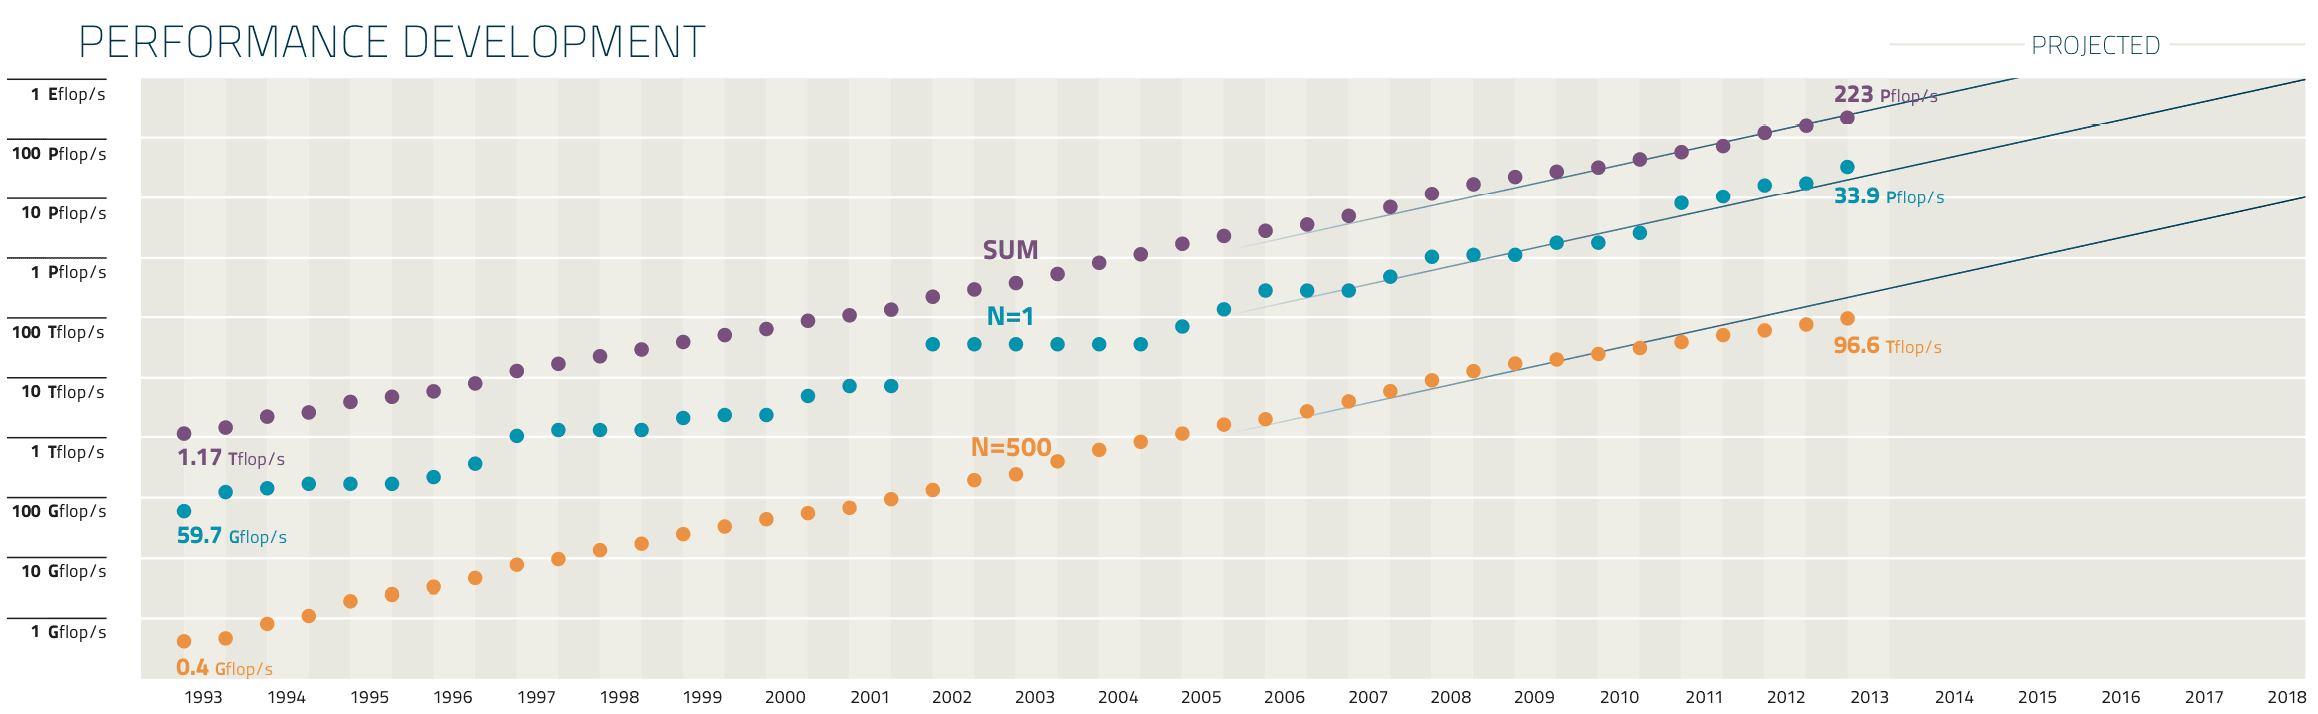 The performance of the systems on the Top500 list continues to improve exponentially (note that it's a logarithmic scale on the vertical axis, with each line marking a tenfold improvement.) The three series of dots here represent the total performance of the top 500 systems at the top, the performance of the No. 1 system in the middle, and the performance of the 500th system at the bottom. (Click to enlarge.)